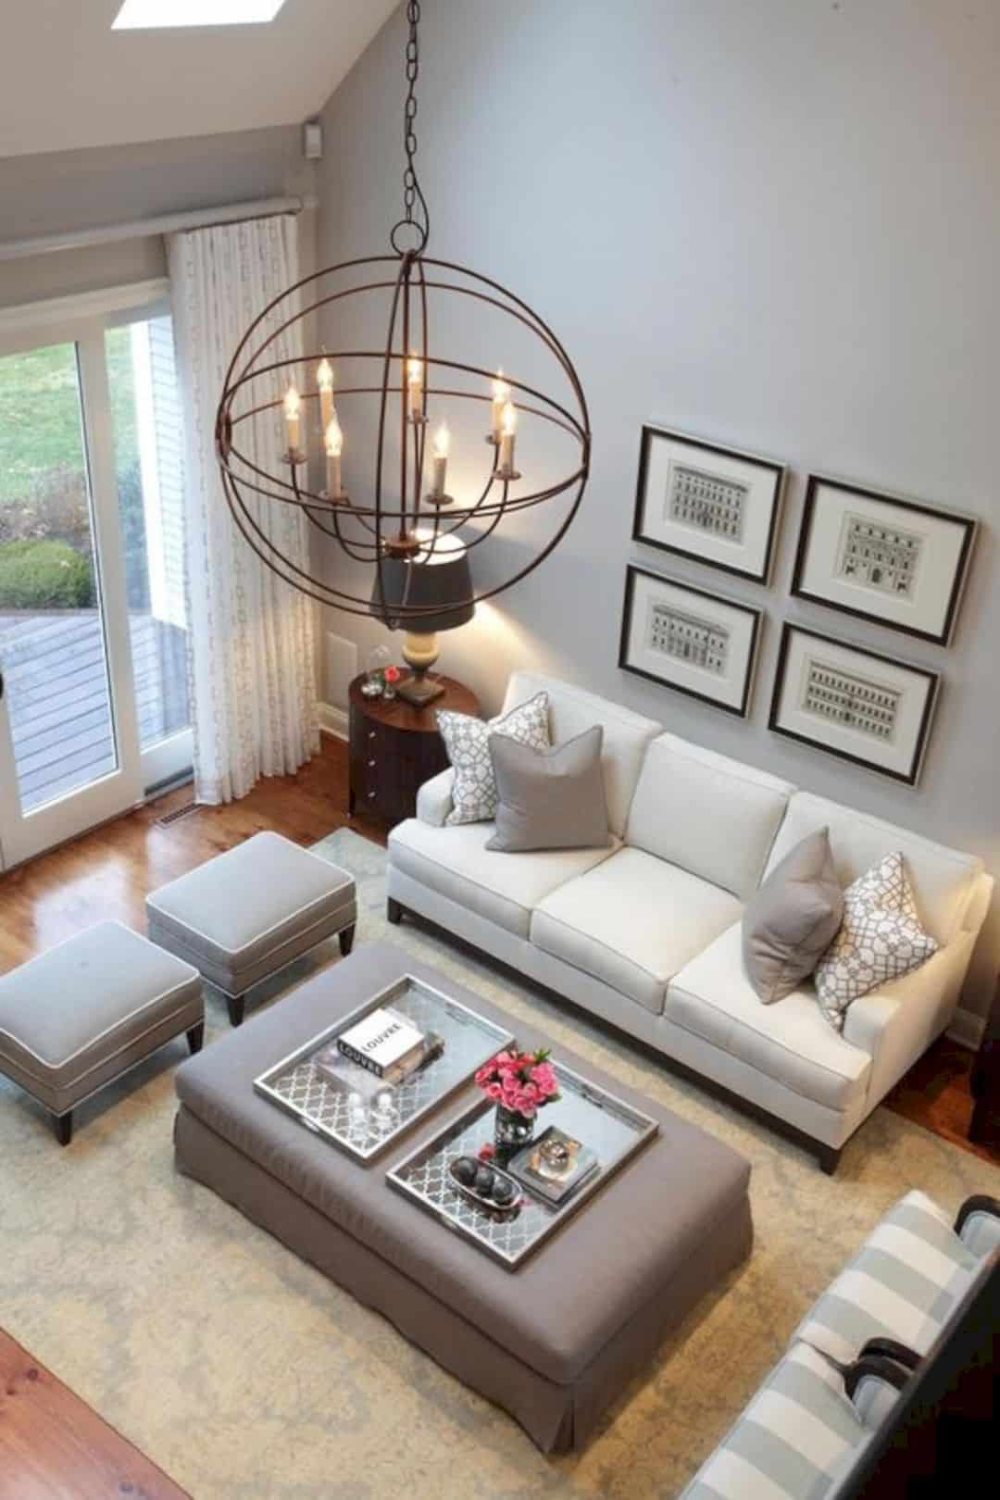 Home Design Ideas For Small Living Room Recipes Food Delicious Food Healthy In 2020 Transitional Decor Living Room Neutral Living Room Design Small Living Rooms